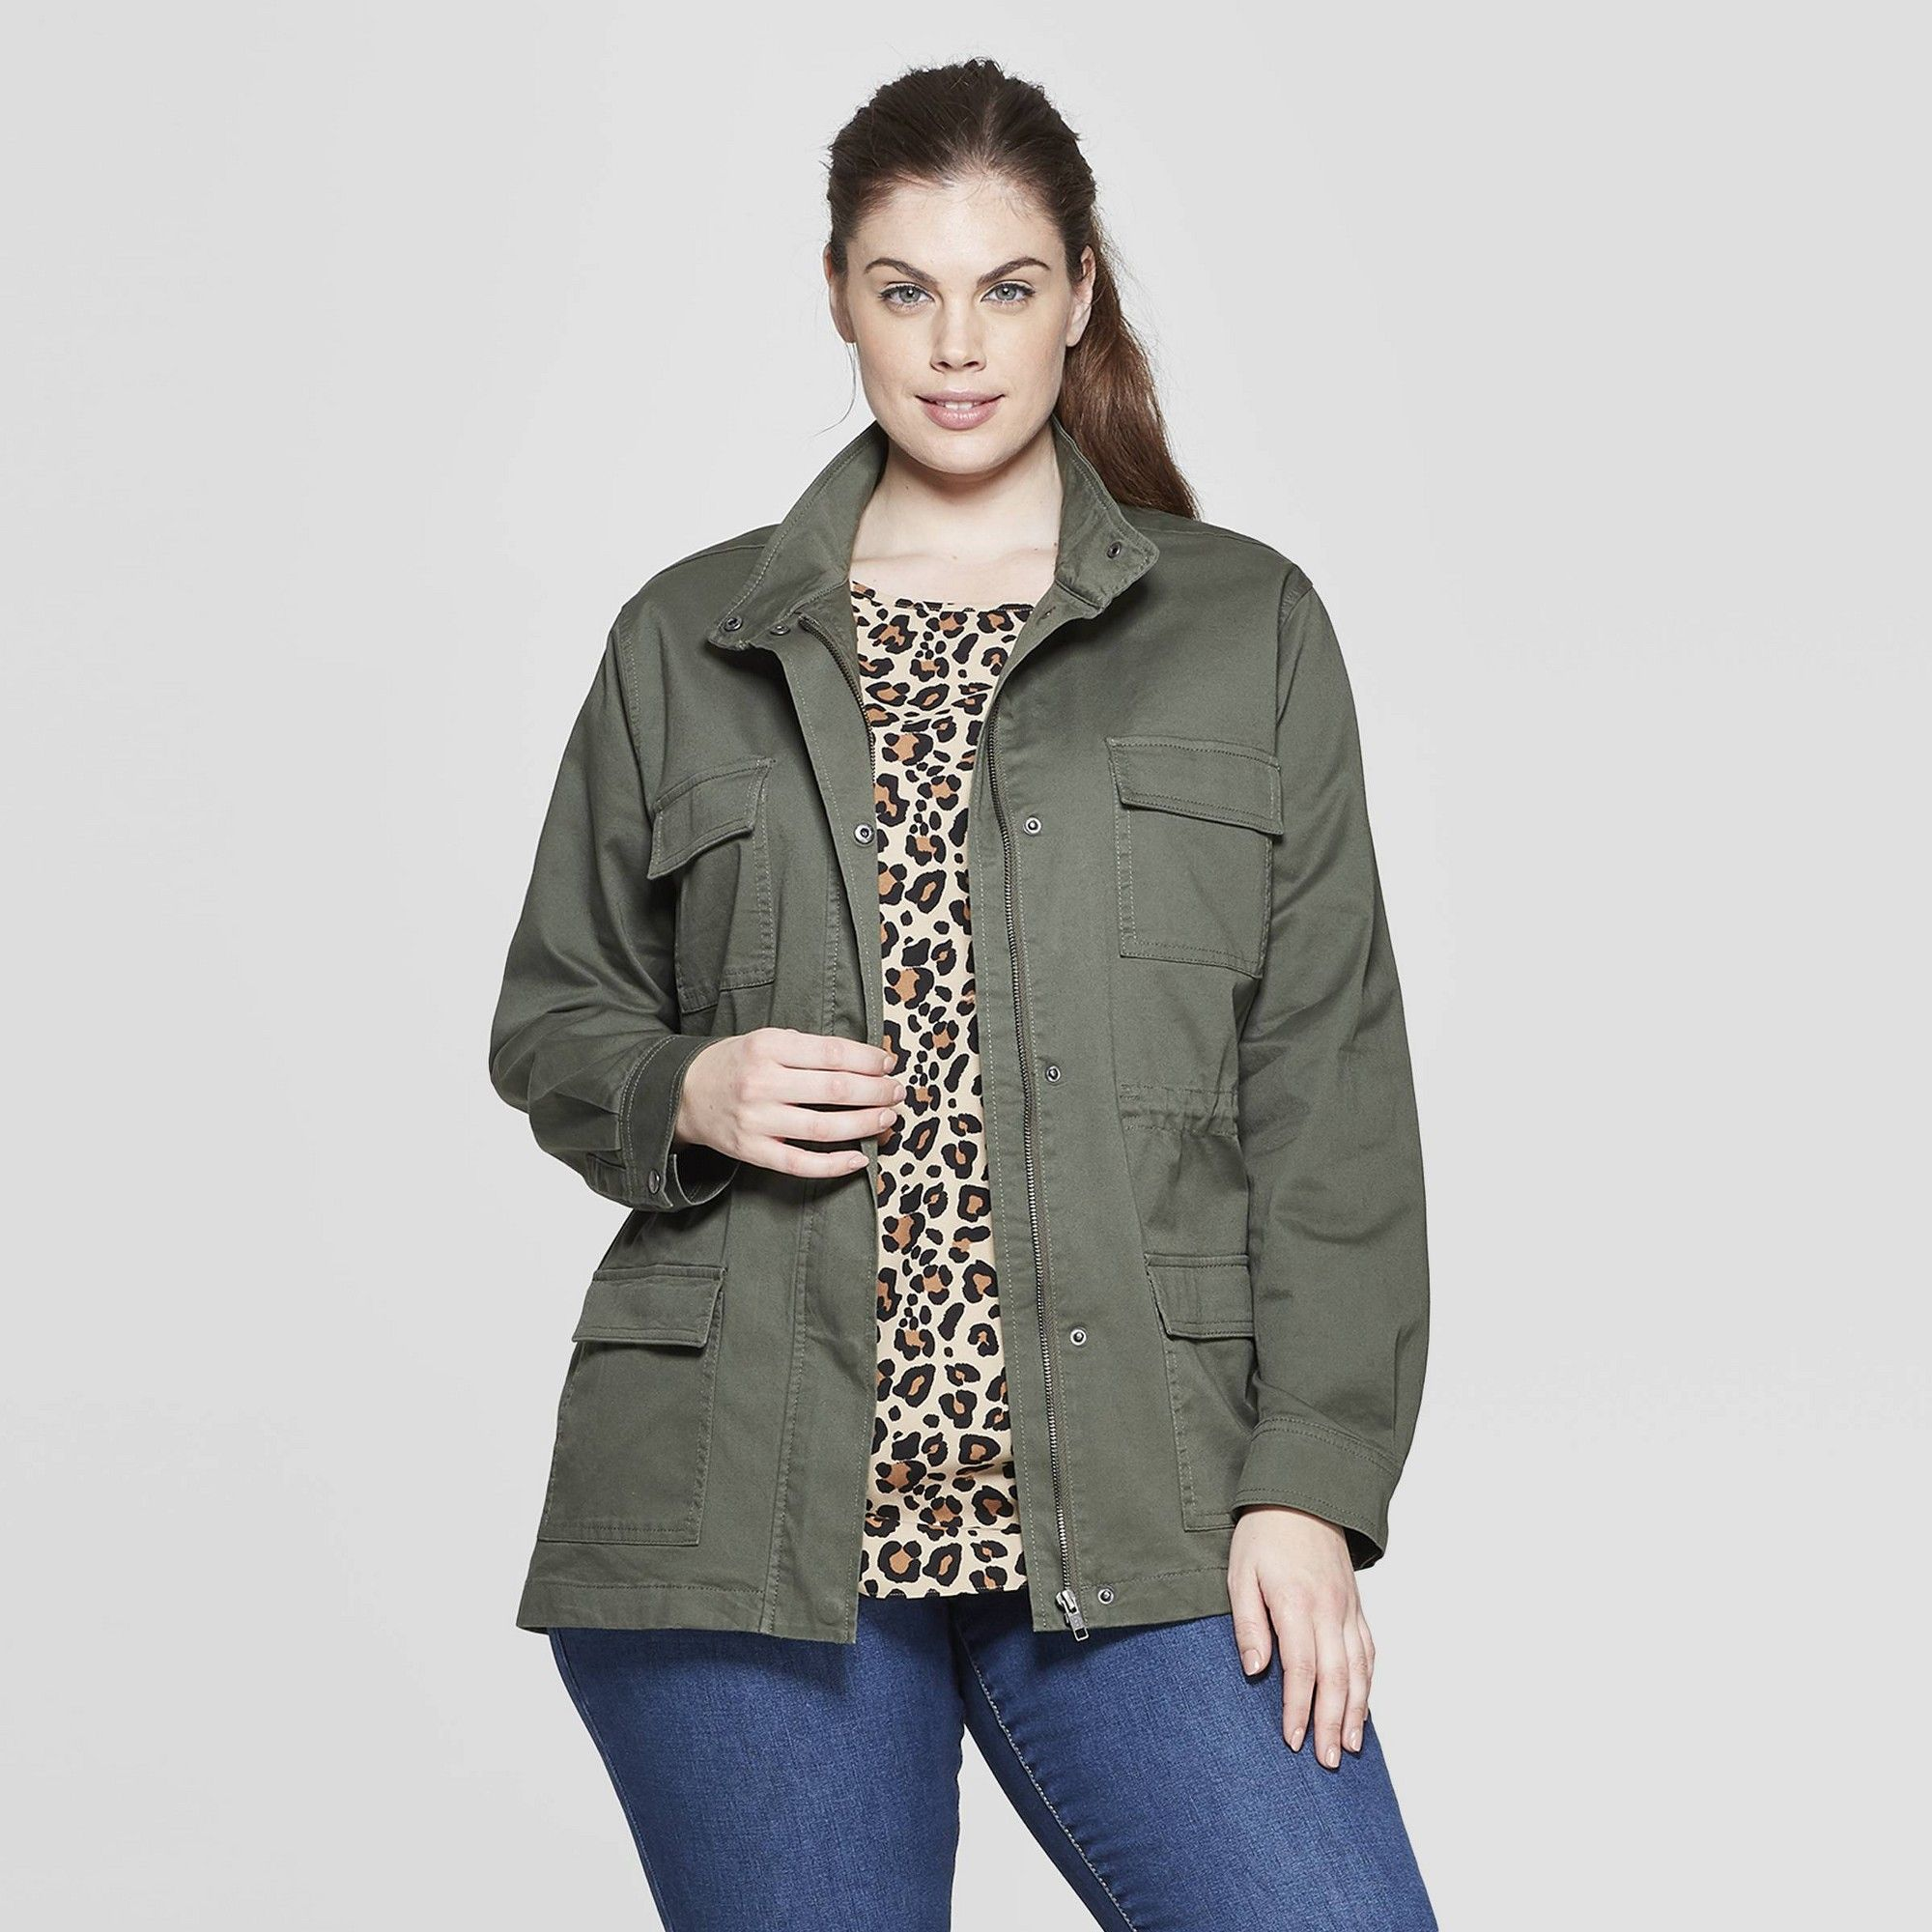 023b4f223d8993 Women s Plus Size Military Jacket - Ava   Viv Olive (Green) 3X in ...